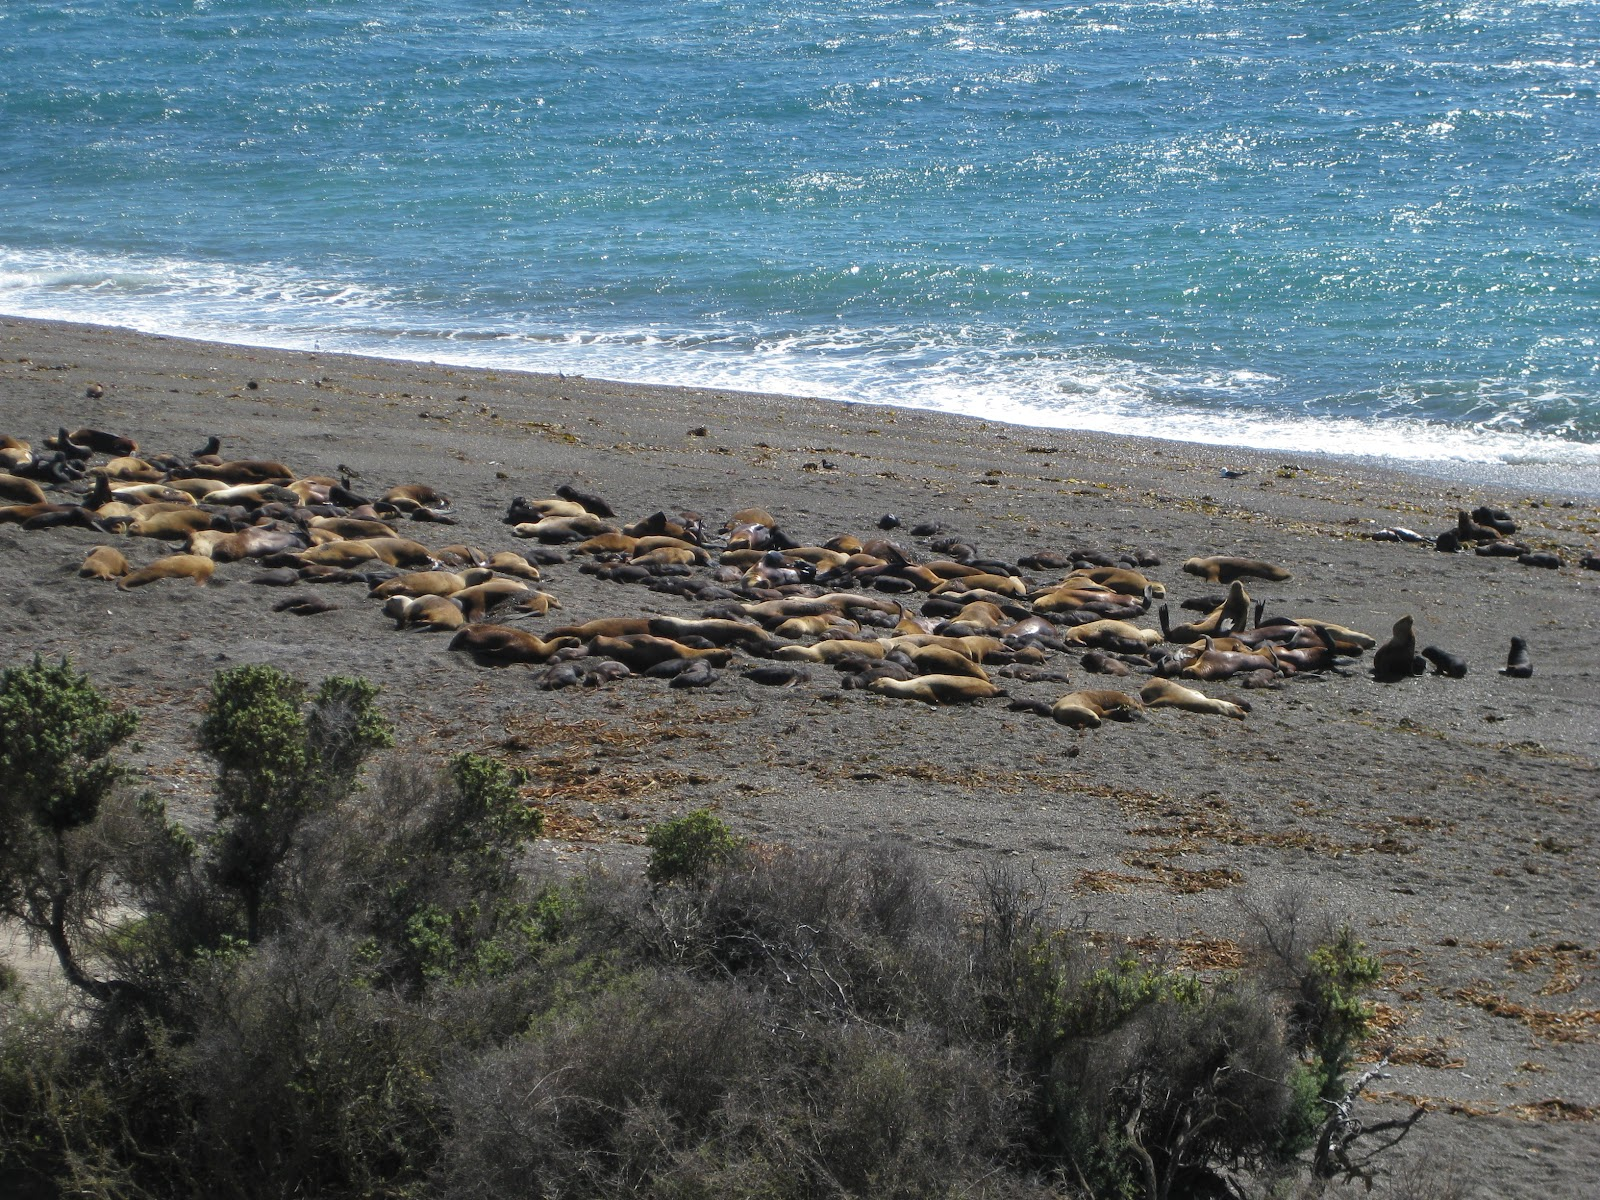 Closer view of sea lions. Unfortunately I don't have the fancy SLR camera and lenses